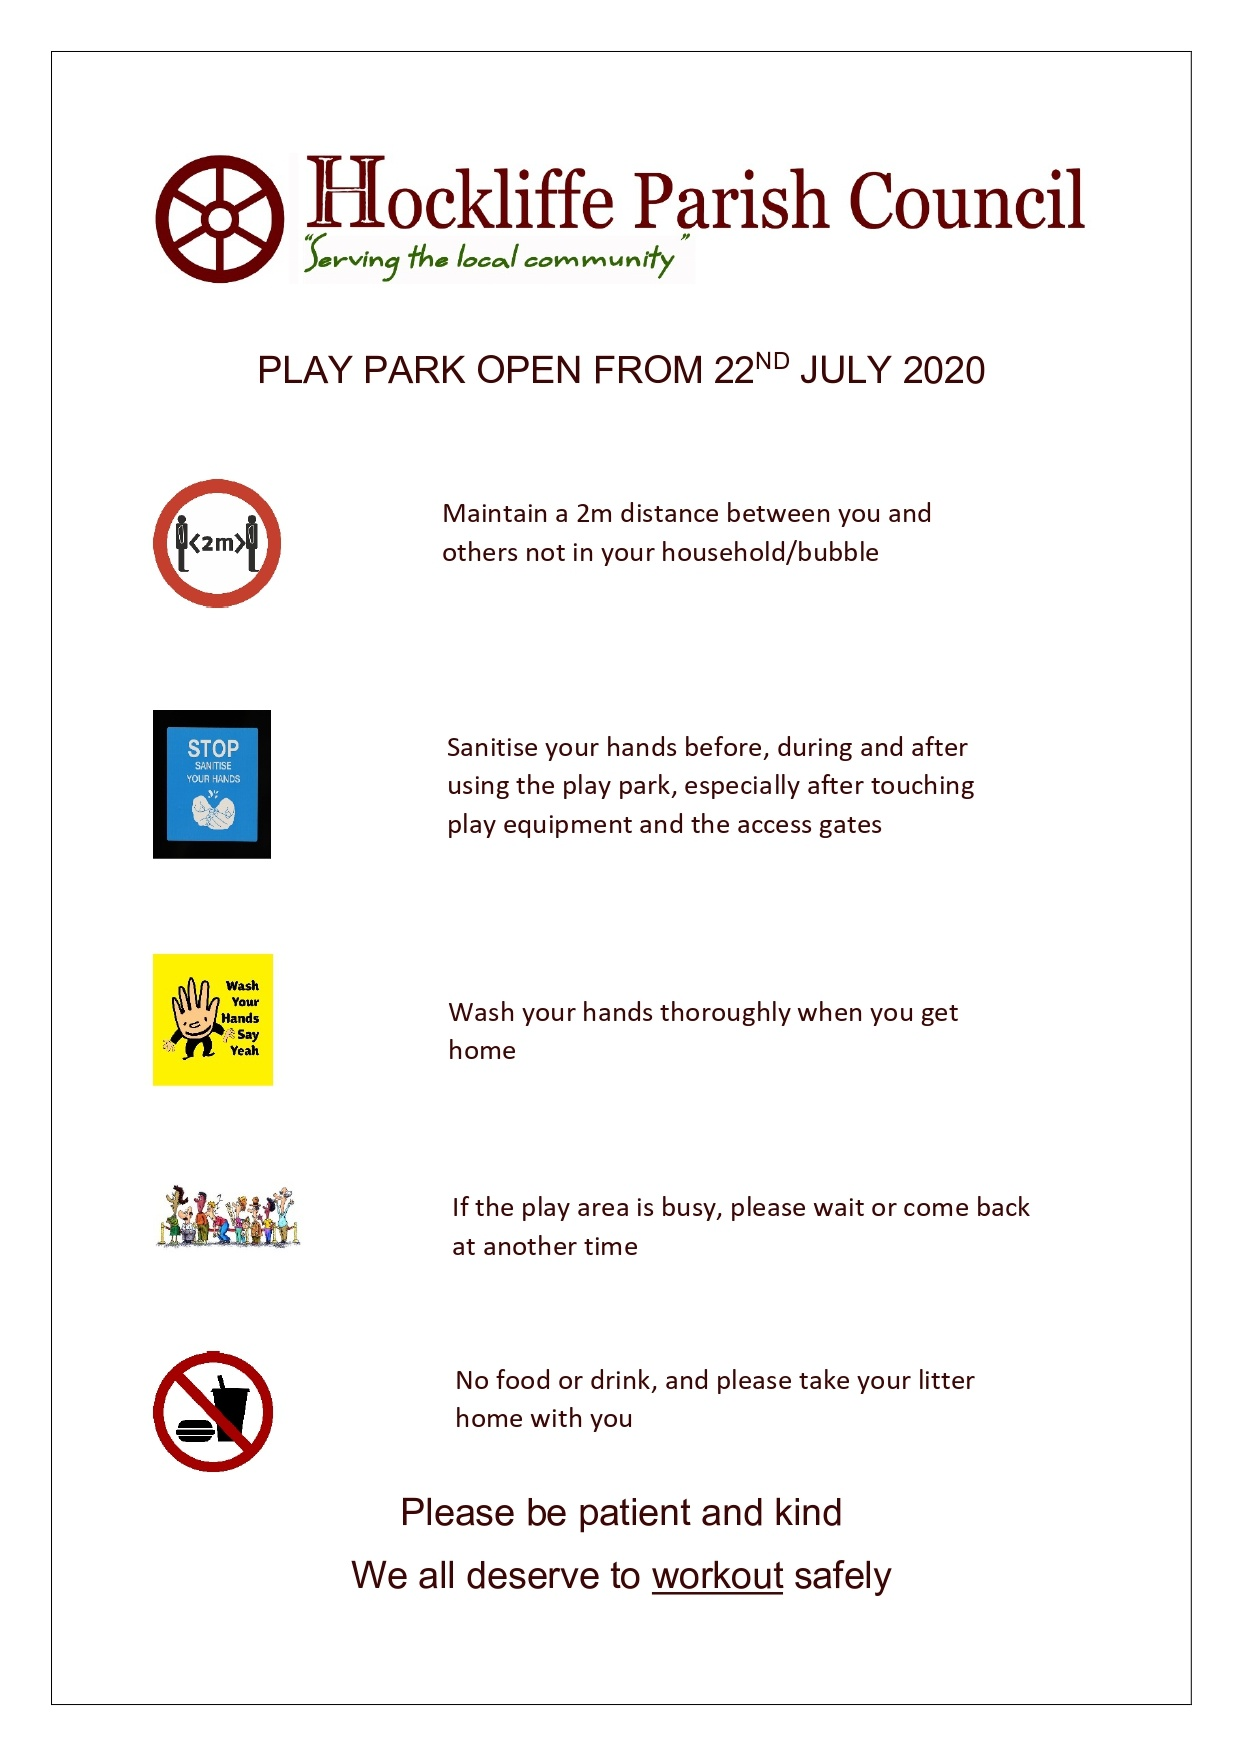 poster announcing the opening of the play park